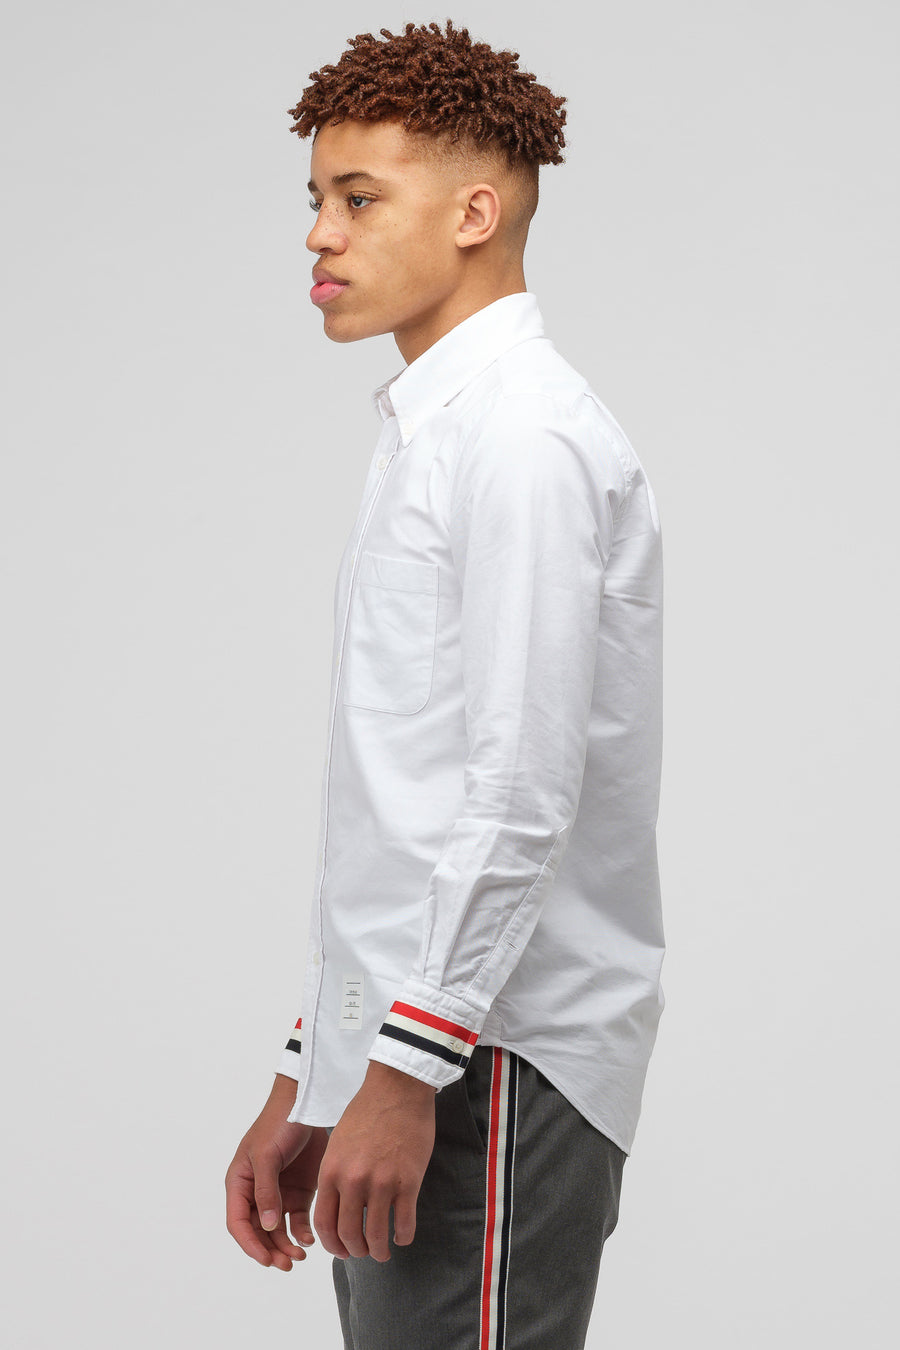 Thom Browne Button Up Long Sleeve Oxford Shirt in White - Notre